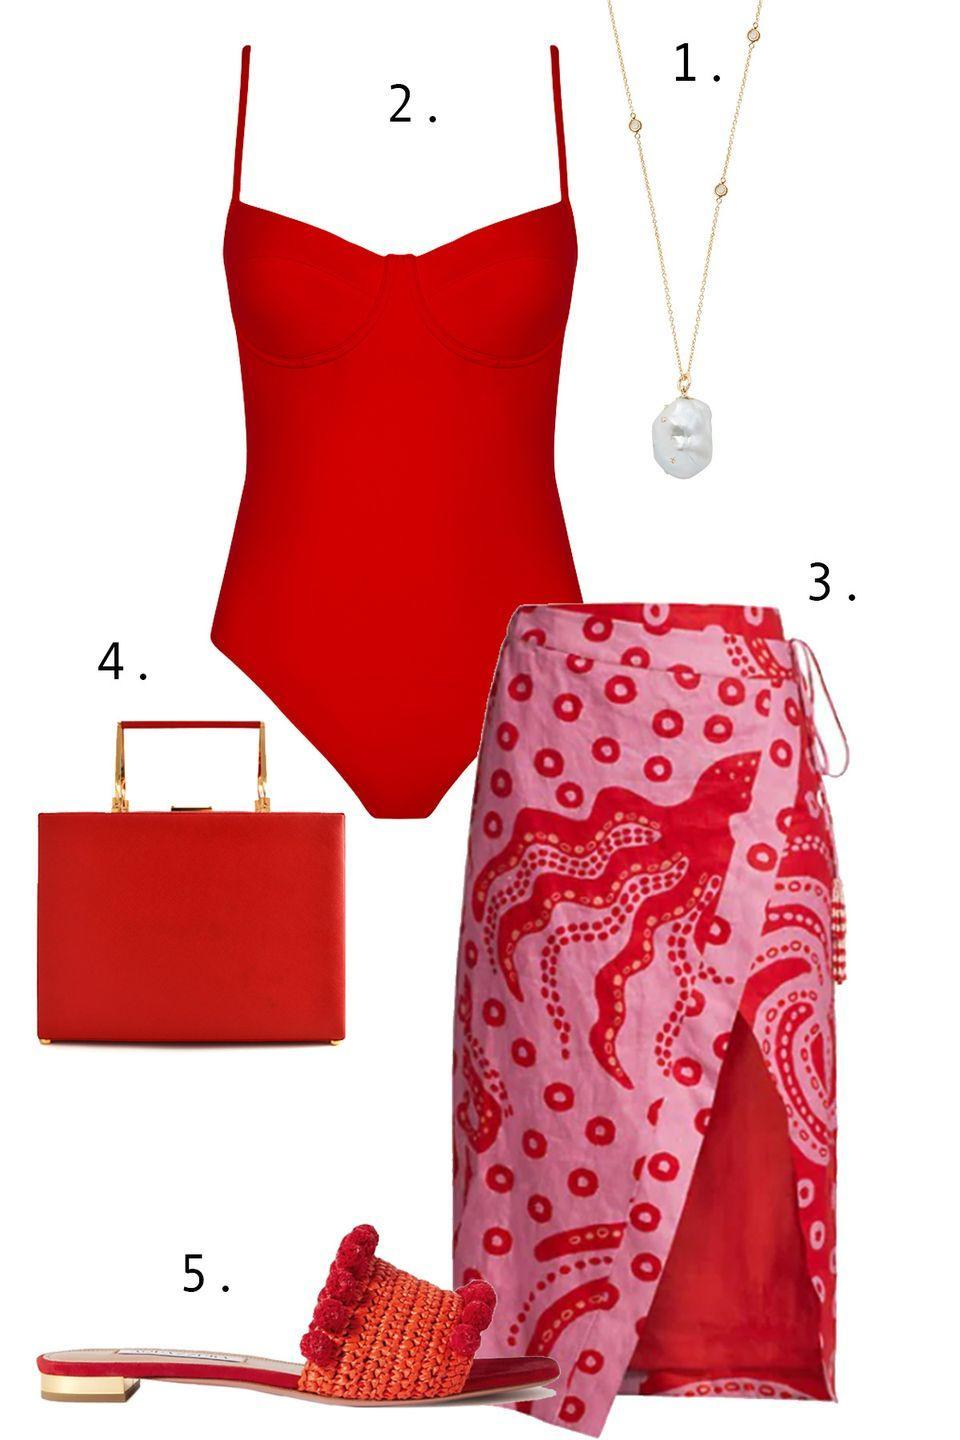 """<p>Turn heads in red. To keep yourself from looking like a color clash, add a skirt or coverup that has the hue as <em>part</em> of the color palette, and then echo your primary color of choice in the structured bag and easy slides. Finish things off with a delicate pearl necklace. </p><ol><li><a href=""""https://go.skimresources.com?id=74968X1525087&xs=1&url=https%3A%2F%2Fwww.matchesfashion.com%2Fus%2Fproducts%2FBibi-Van-Der-Velden-Diamond%252C-baroque-pearl-%2526-18kt-gold-necklace-1307814"""" rel=""""nofollow noopener"""" target=""""_blank"""" data-ylk=""""slk:Bibi Van Der Velden necklace"""" class=""""link rapid-noclick-resp"""">Bibi Van Der Velden necklace</a> 2. <a href=""""https://go.skimresources.com?id=74968X1525087&xs=1&url=https%3A%2F%2Fernestleoty.com%2Fcollections%2Fswimwear%2Fproducts%2Fanais-swimsuit-scarlet"""" rel=""""nofollow noopener"""" target=""""_blank"""" data-ylk=""""slk:Ernest Leoty swim"""" class=""""link rapid-noclick-resp"""">Ernest Leoty swim</a> 3. <a href=""""https://go.skimresources.com?id=74968X1525087&xs=1&url=https%3A%2F%2Fwww.saksfifthavenue.com%2Fproduct%2Ffarm-rio-octocool-wrap-skirt-0400014489990.html%3Fdwvar_0400014489990_color%3DLIGHT%2520PINK"""" rel=""""nofollow noopener"""" target=""""_blank"""" data-ylk=""""slk:Farm Rio skirt"""" class=""""link rapid-noclick-resp"""">Farm Rio skirt</a> 4. <a href=""""https://maison-de-mode.com/products/charlotte-red-leather-bag"""" rel=""""nofollow noopener"""" target=""""_blank"""" data-ylk=""""slk:PRIM by Michelle Elie bag"""" class=""""link rapid-noclick-resp"""">PRIM by Michelle Elie bag</a> 5. <a href=""""https://go.skimresources.com?id=74968X1525087&xs=1&url=https%3A%2F%2Fwww.net-a-porter.com%2Fen-us%2Fshop%2Fproduct%2Faquazzura%2Fshoes%2Fflat%2Fpompom-embellished-woven-raffia-slides%2F2204324138602838"""" rel=""""nofollow noopener"""" target=""""_blank"""" data-ylk=""""slk:Aquazzura sandals"""" class=""""link rapid-noclick-resp"""">Aquazzura sandals</a></li></ol>"""